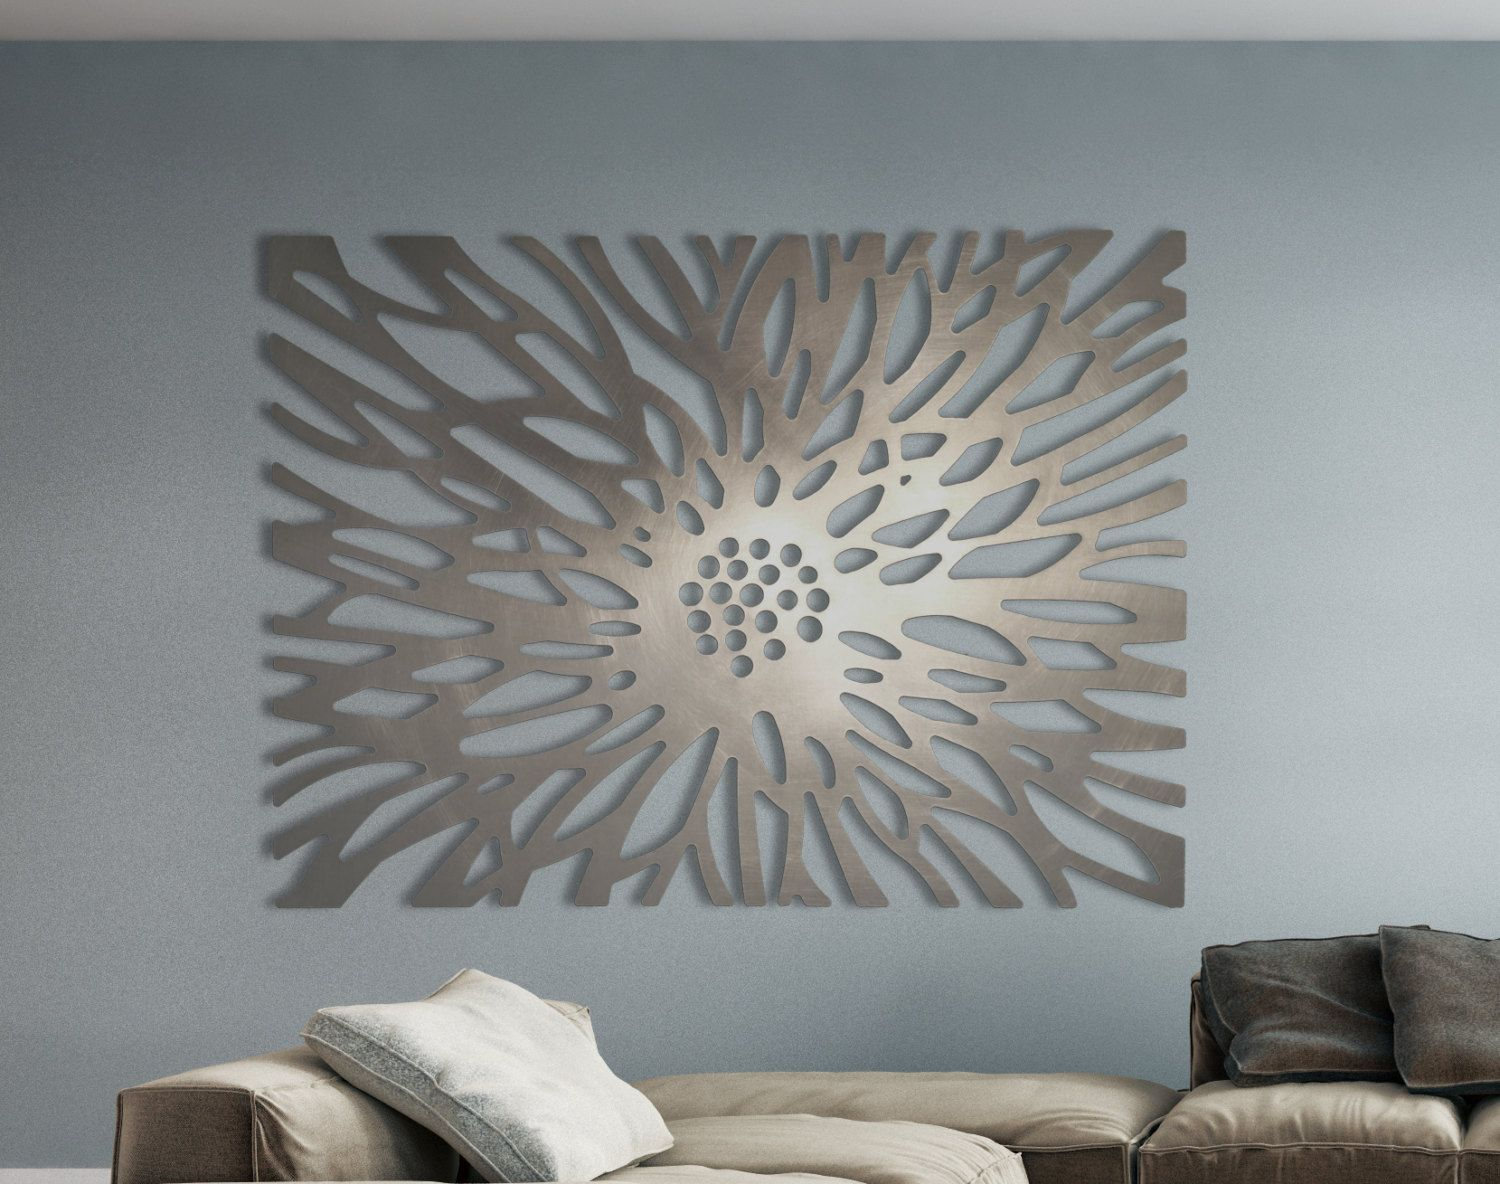 Flowerburst this is a limited edition custom laser cut aluminum laser cut metal decorative wall art panel sculpture for home office indoor or outdoor use flowerburst amipublicfo Choice Image